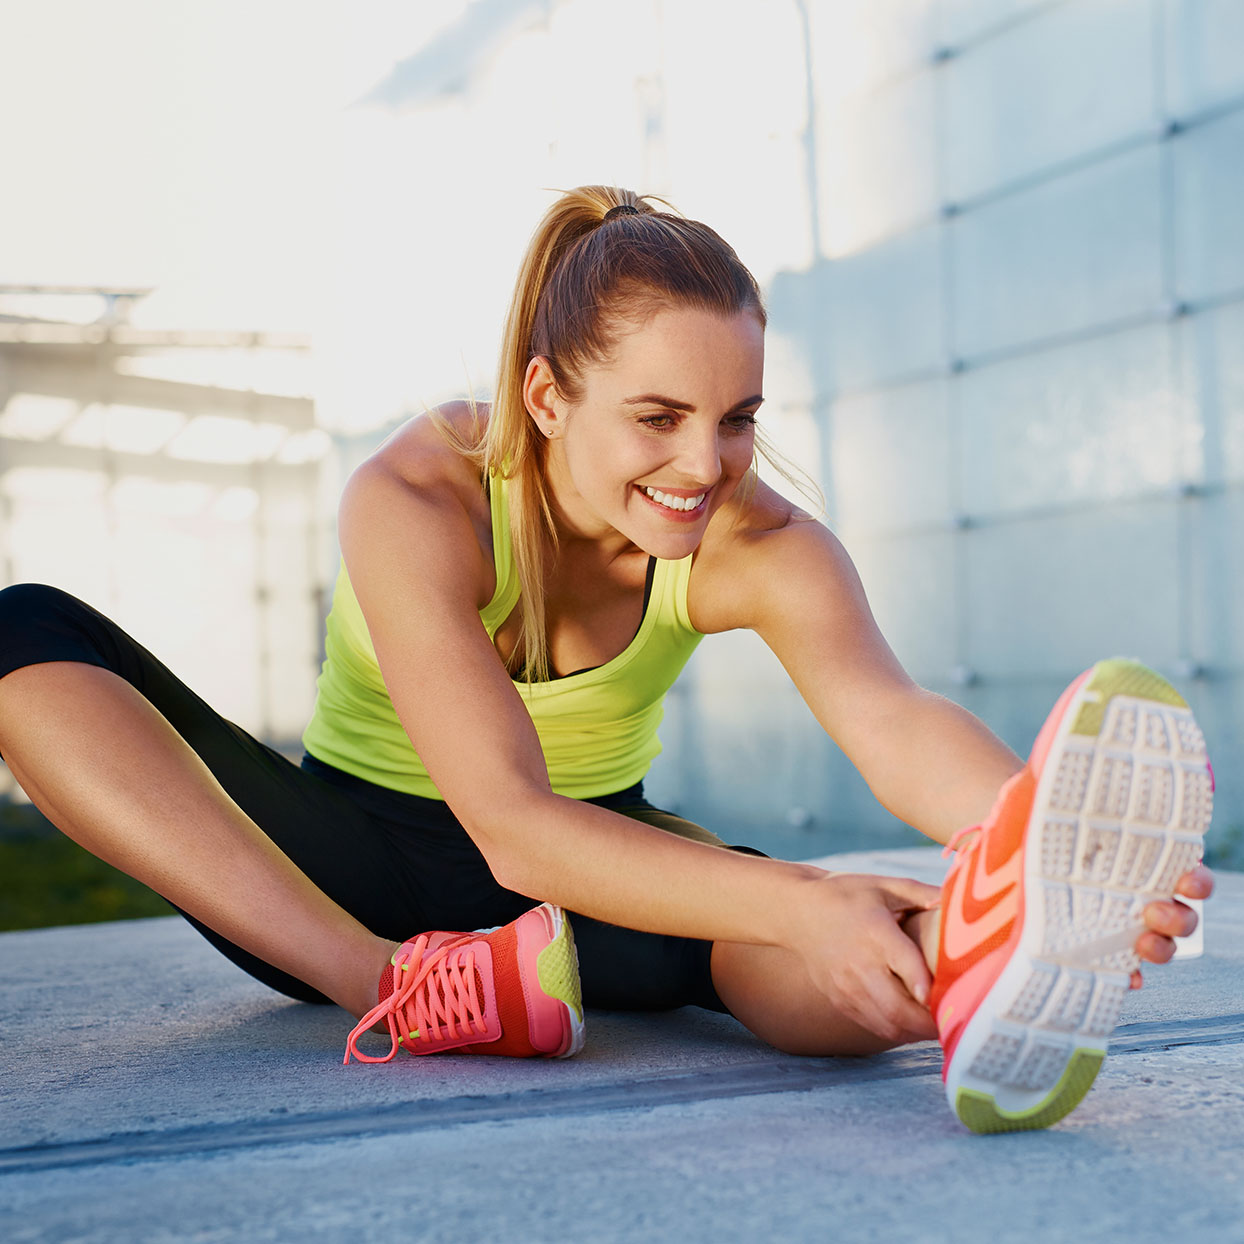 A woman stretches and improves her flexibility after a workout